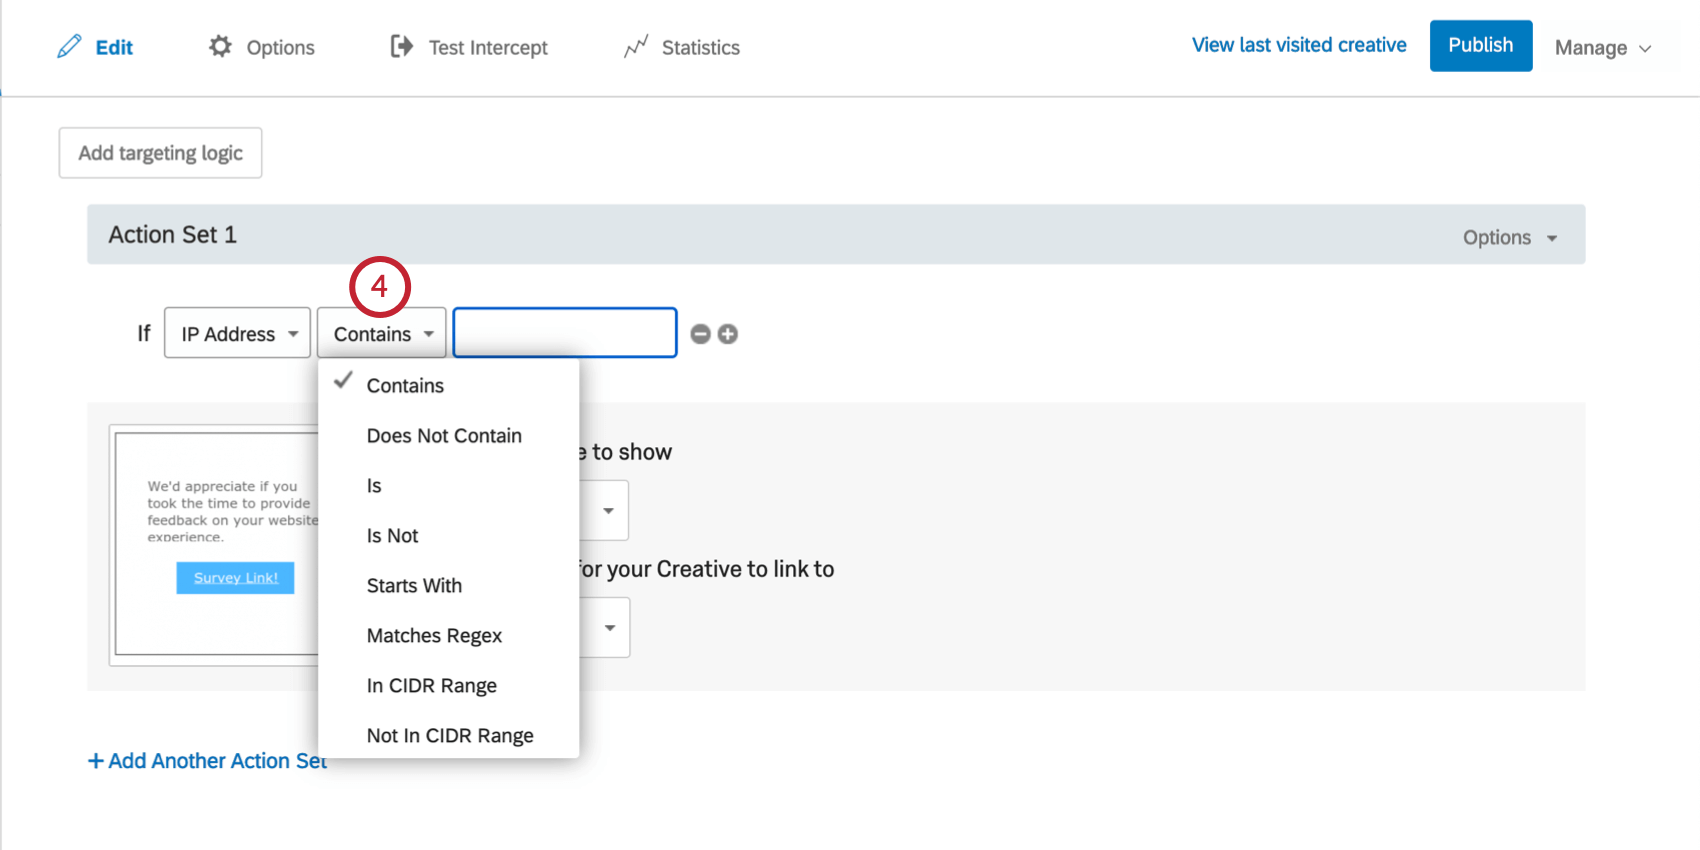 In the first field, IP Address is selected. In second, dropdown expanded to reveal options like Contains, IS, and Starts with